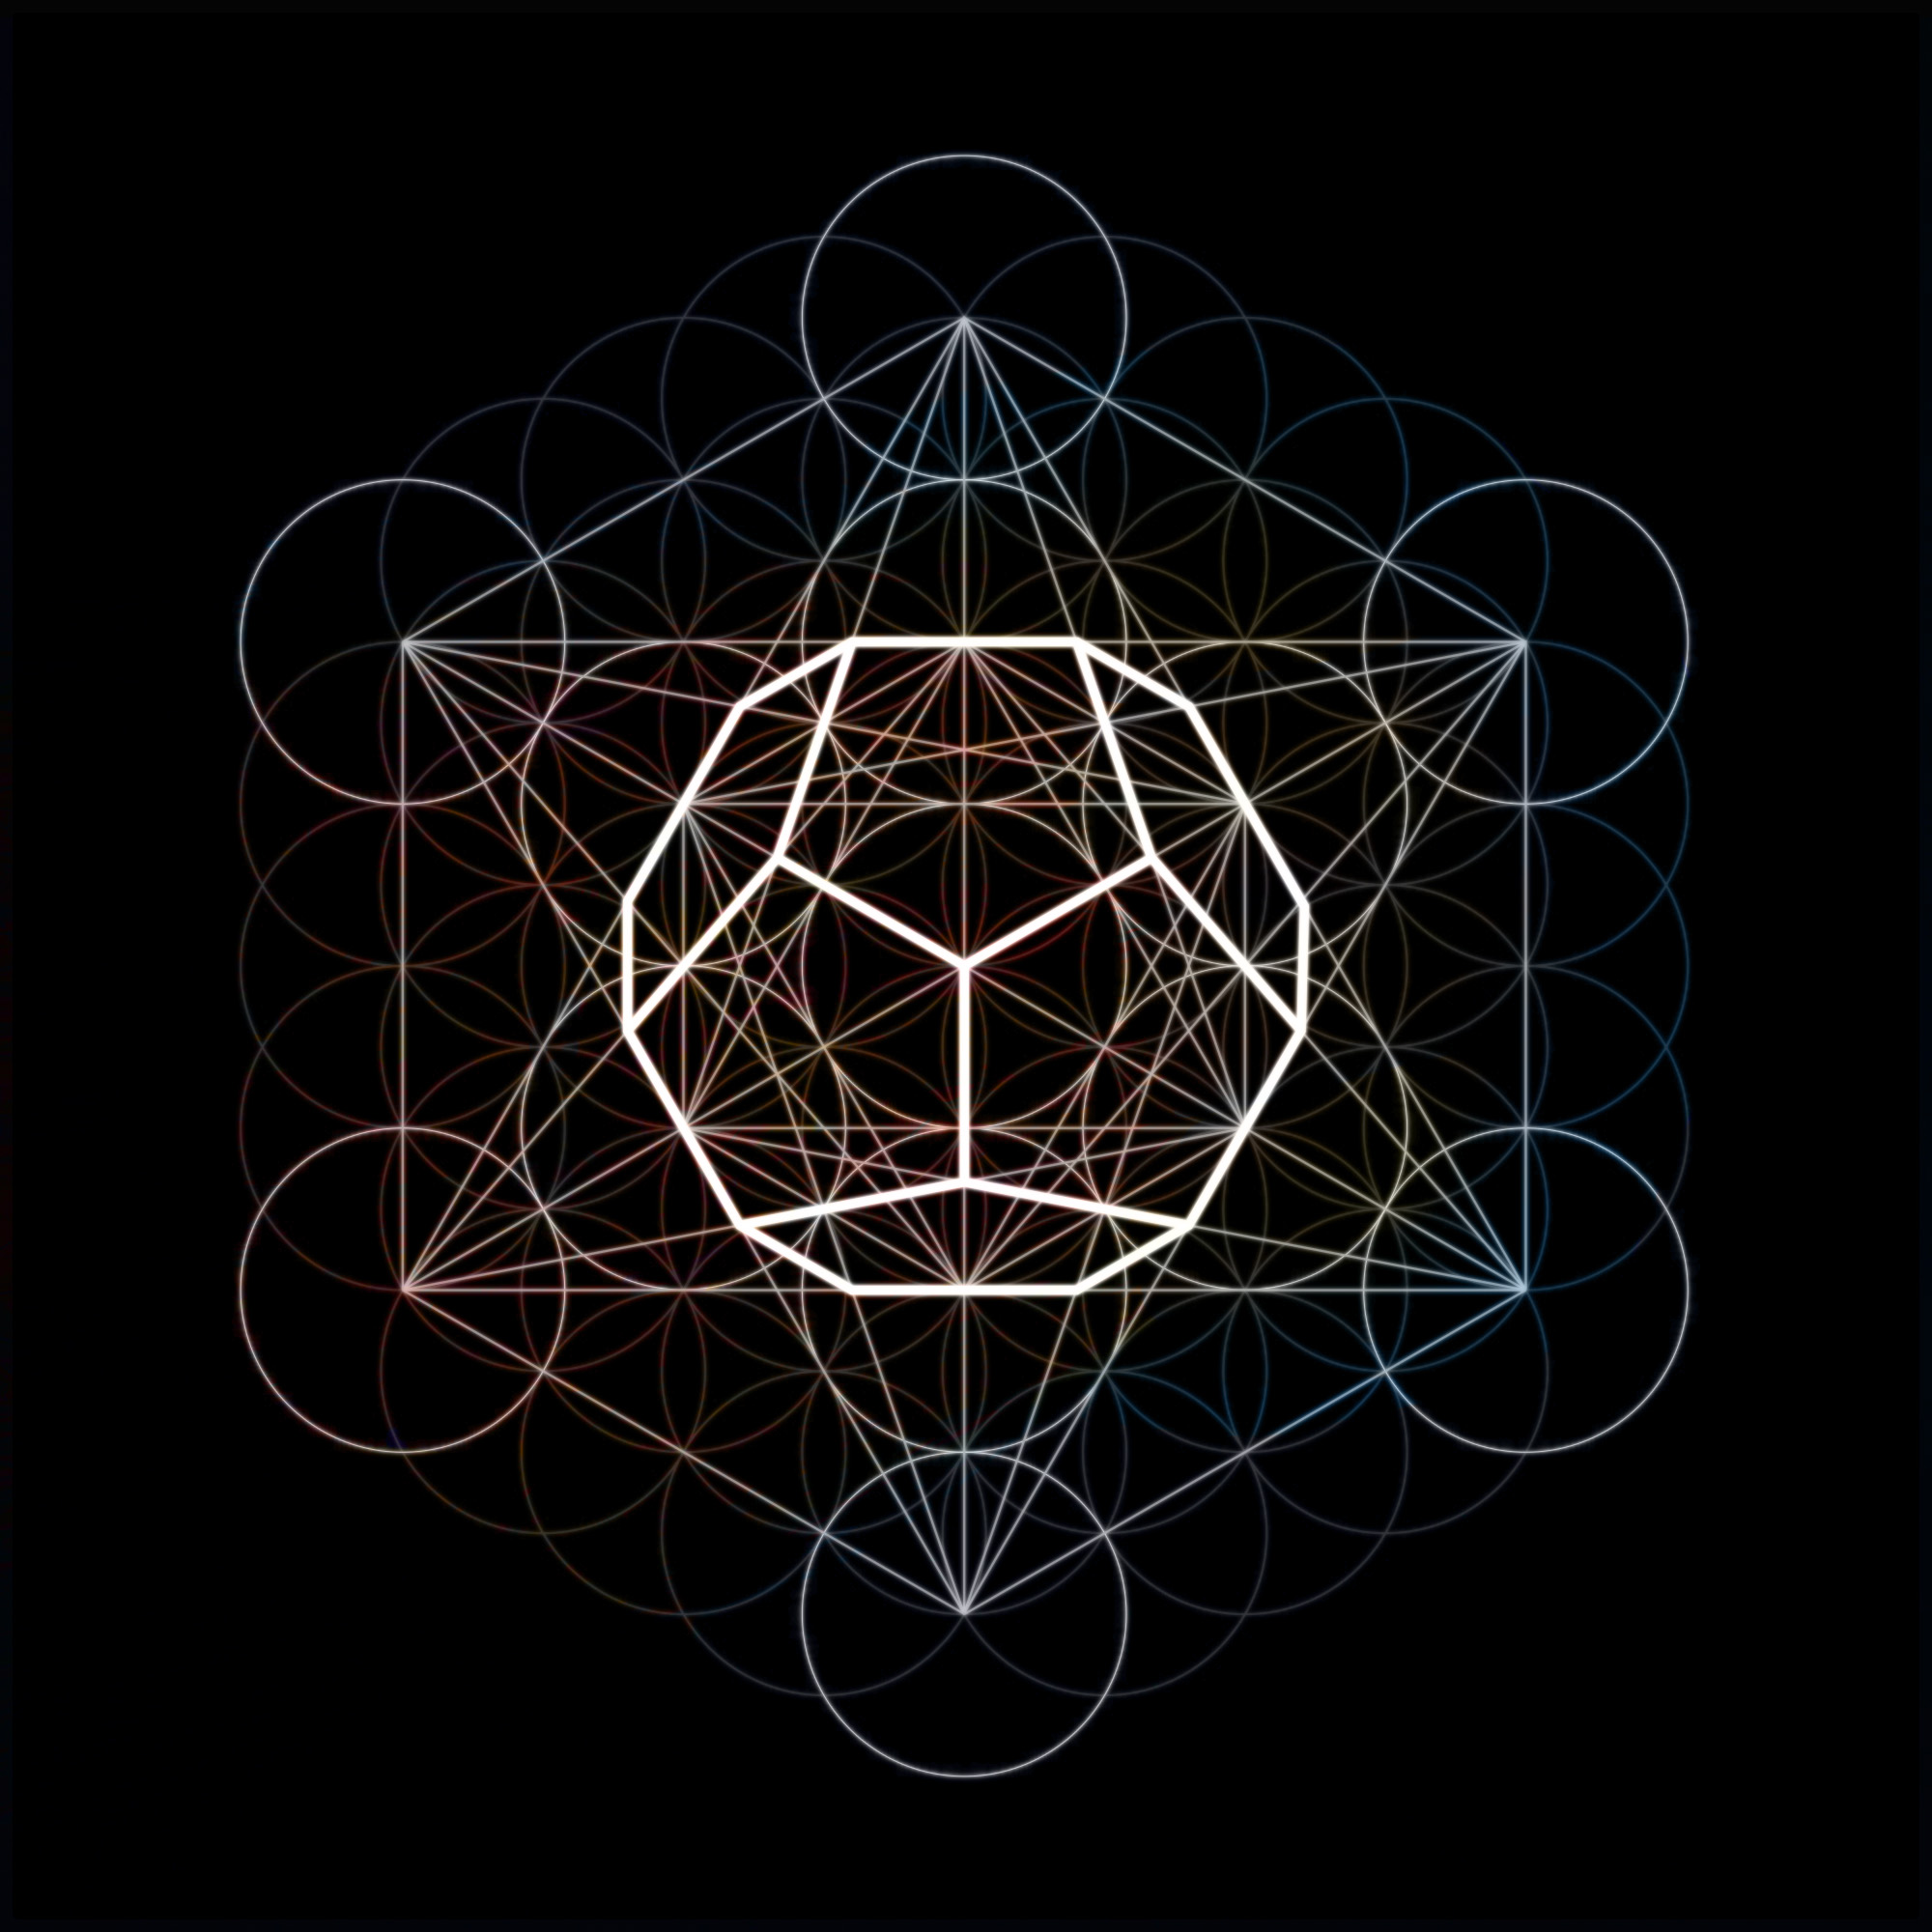 metatrons_dodecahedron_blackrainbow